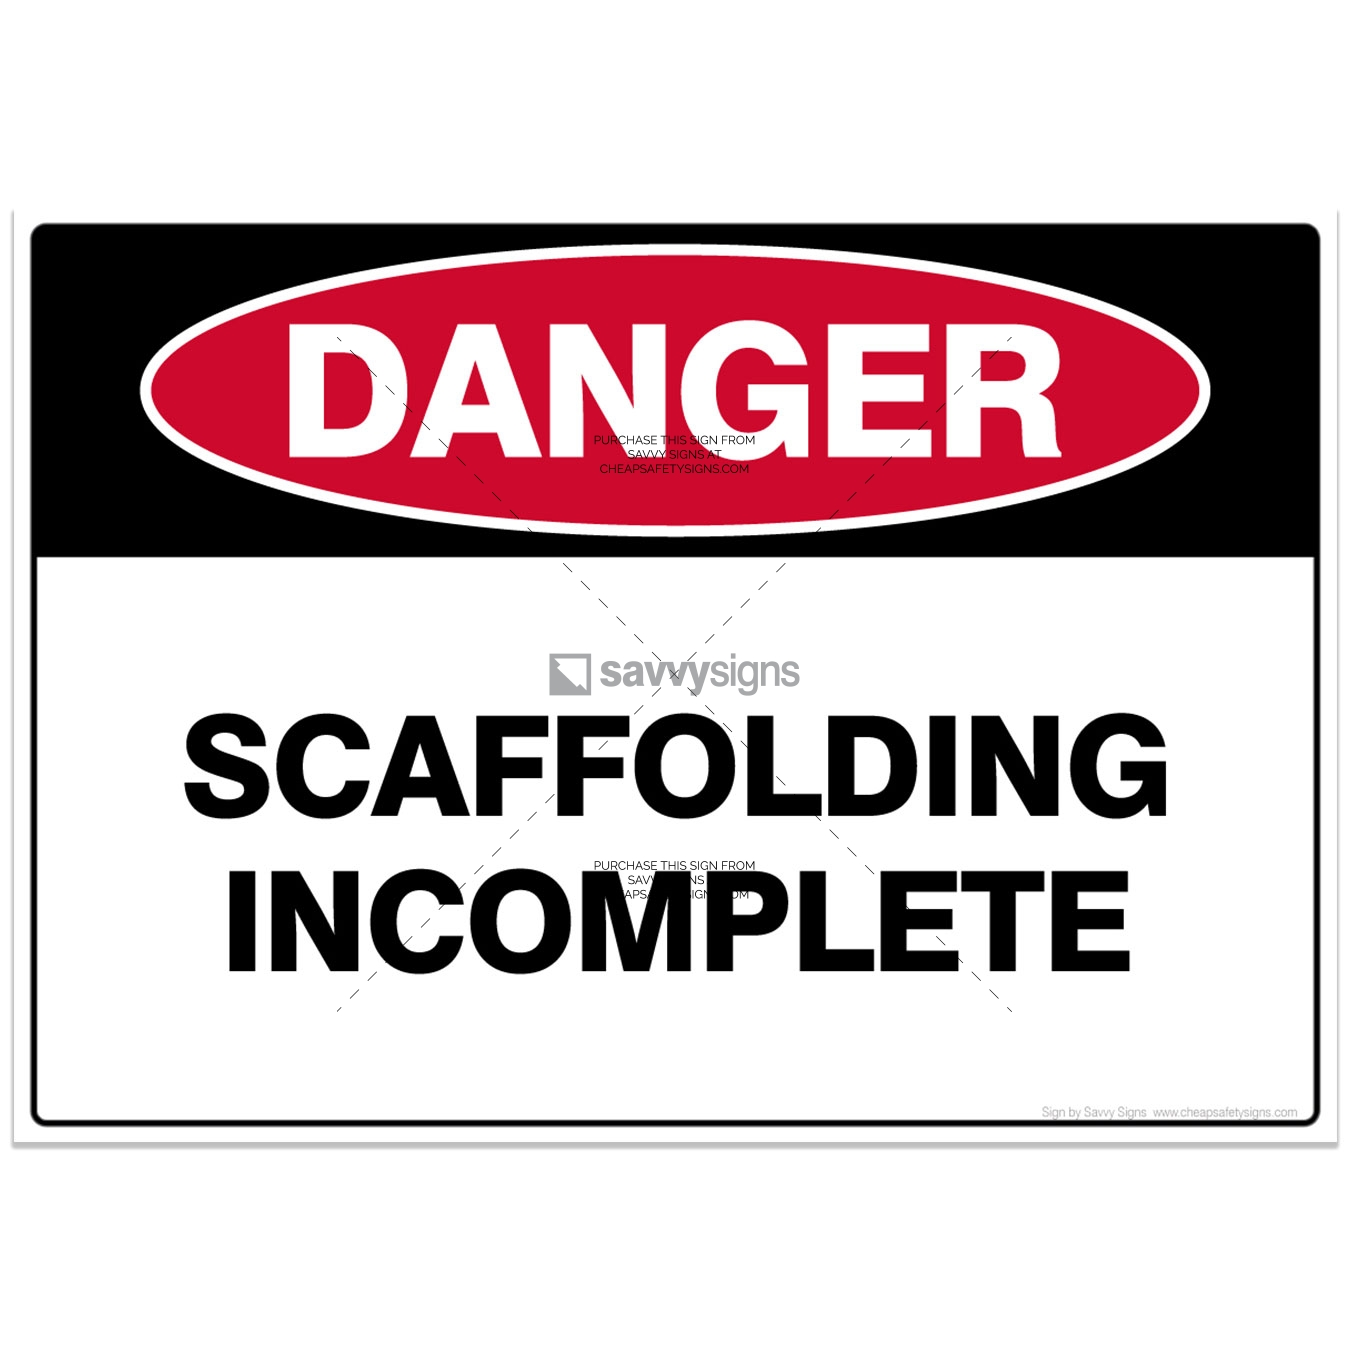 SSDAN3064-DANGER-Workplace-Safety-Signs_Savvy-Signs_v4.1